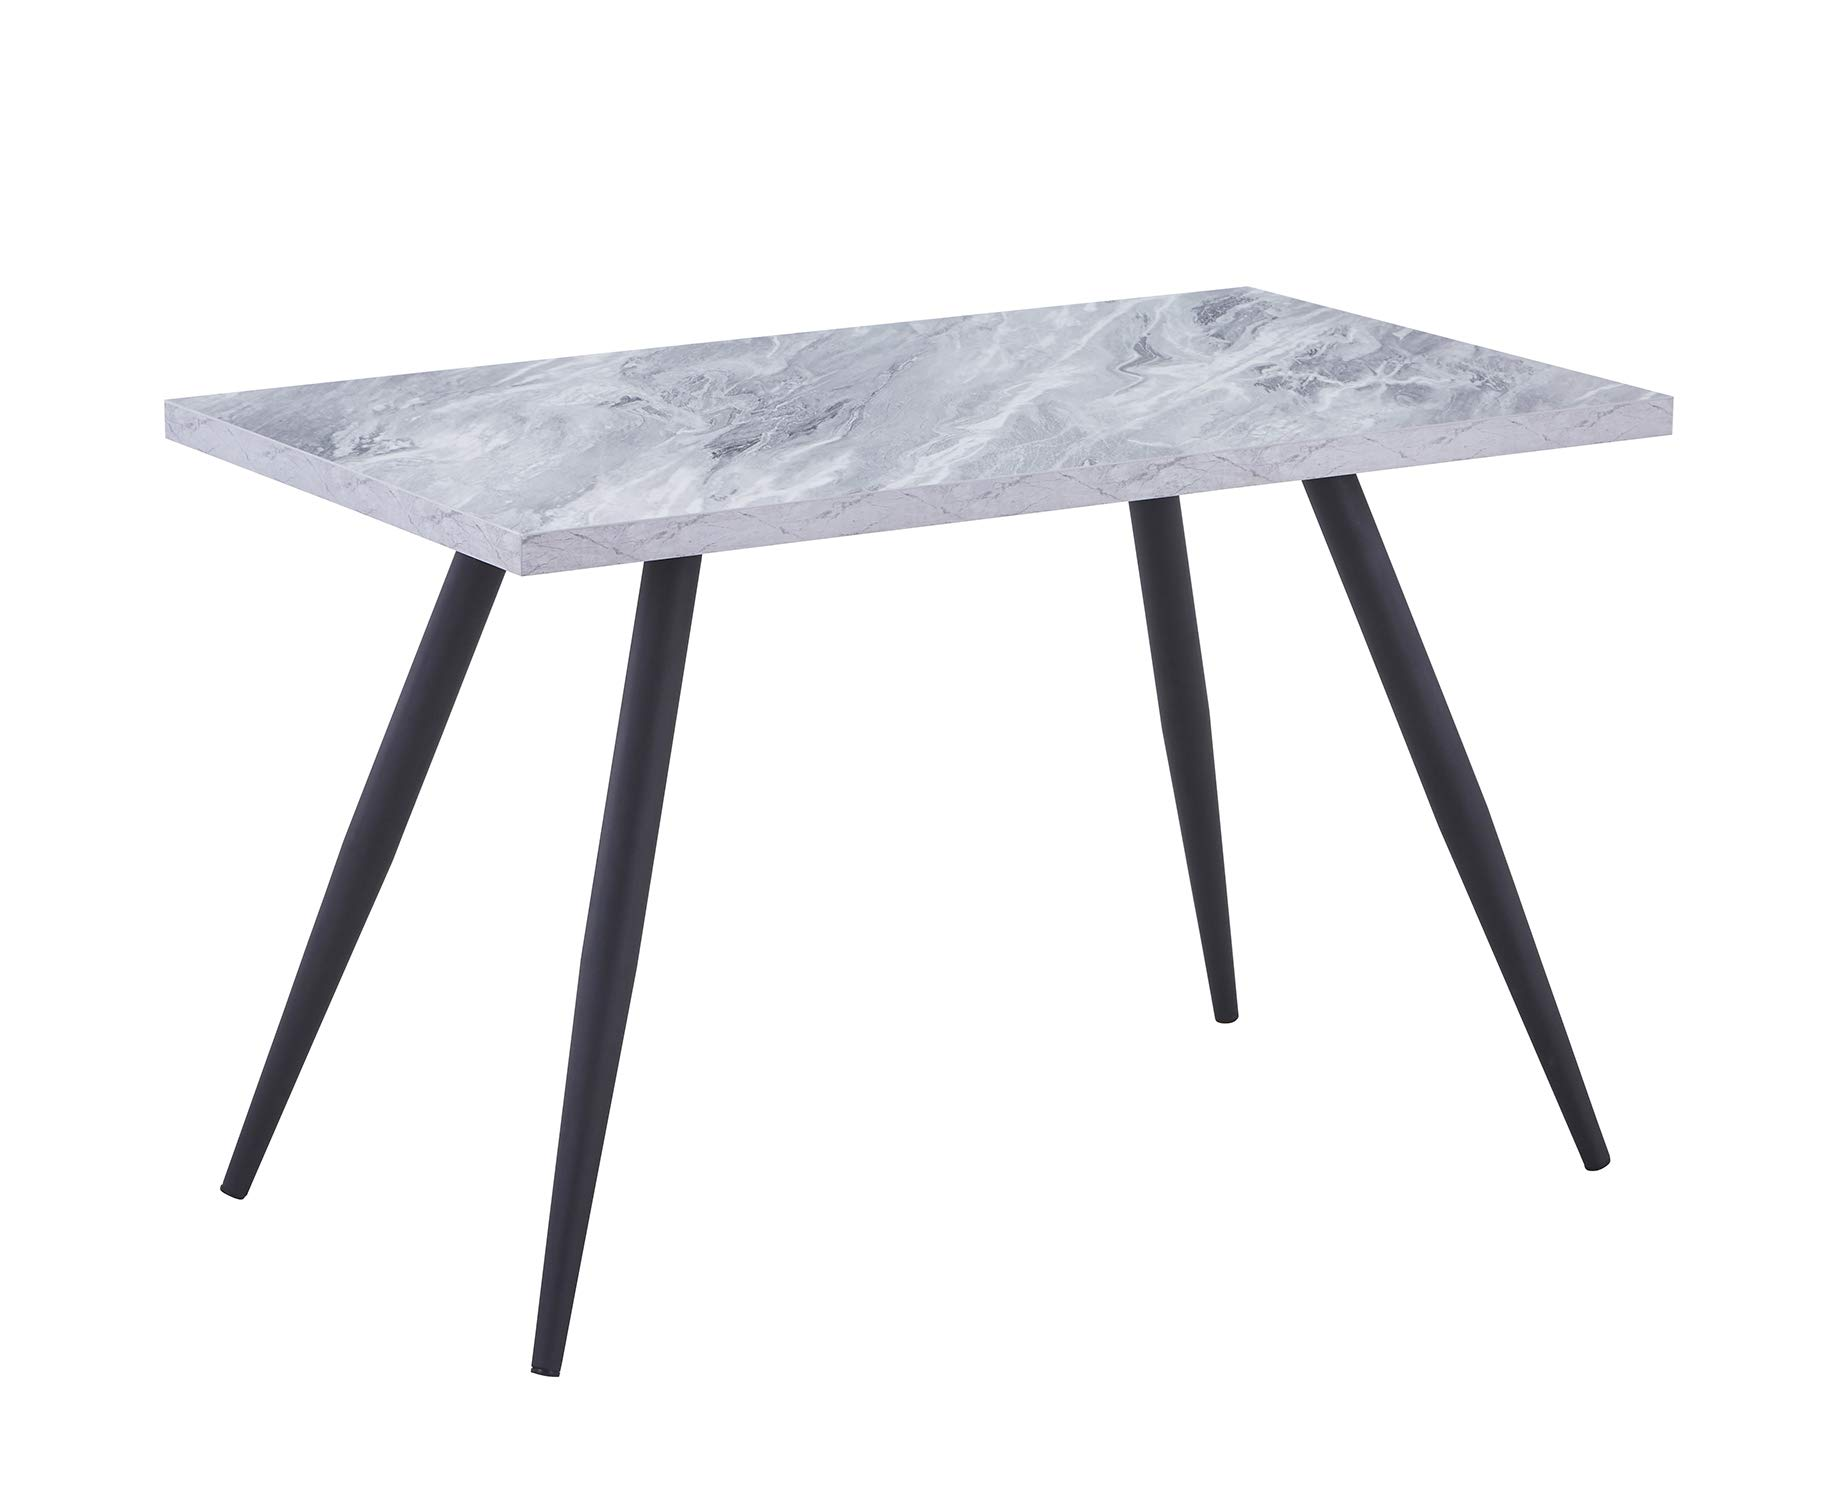 Ainpecca Dining Table With Metal Legs Kitchen Table White Marble Effect Top 120 70cm Buy Online In Burundi At Desertcart Productid 185778724